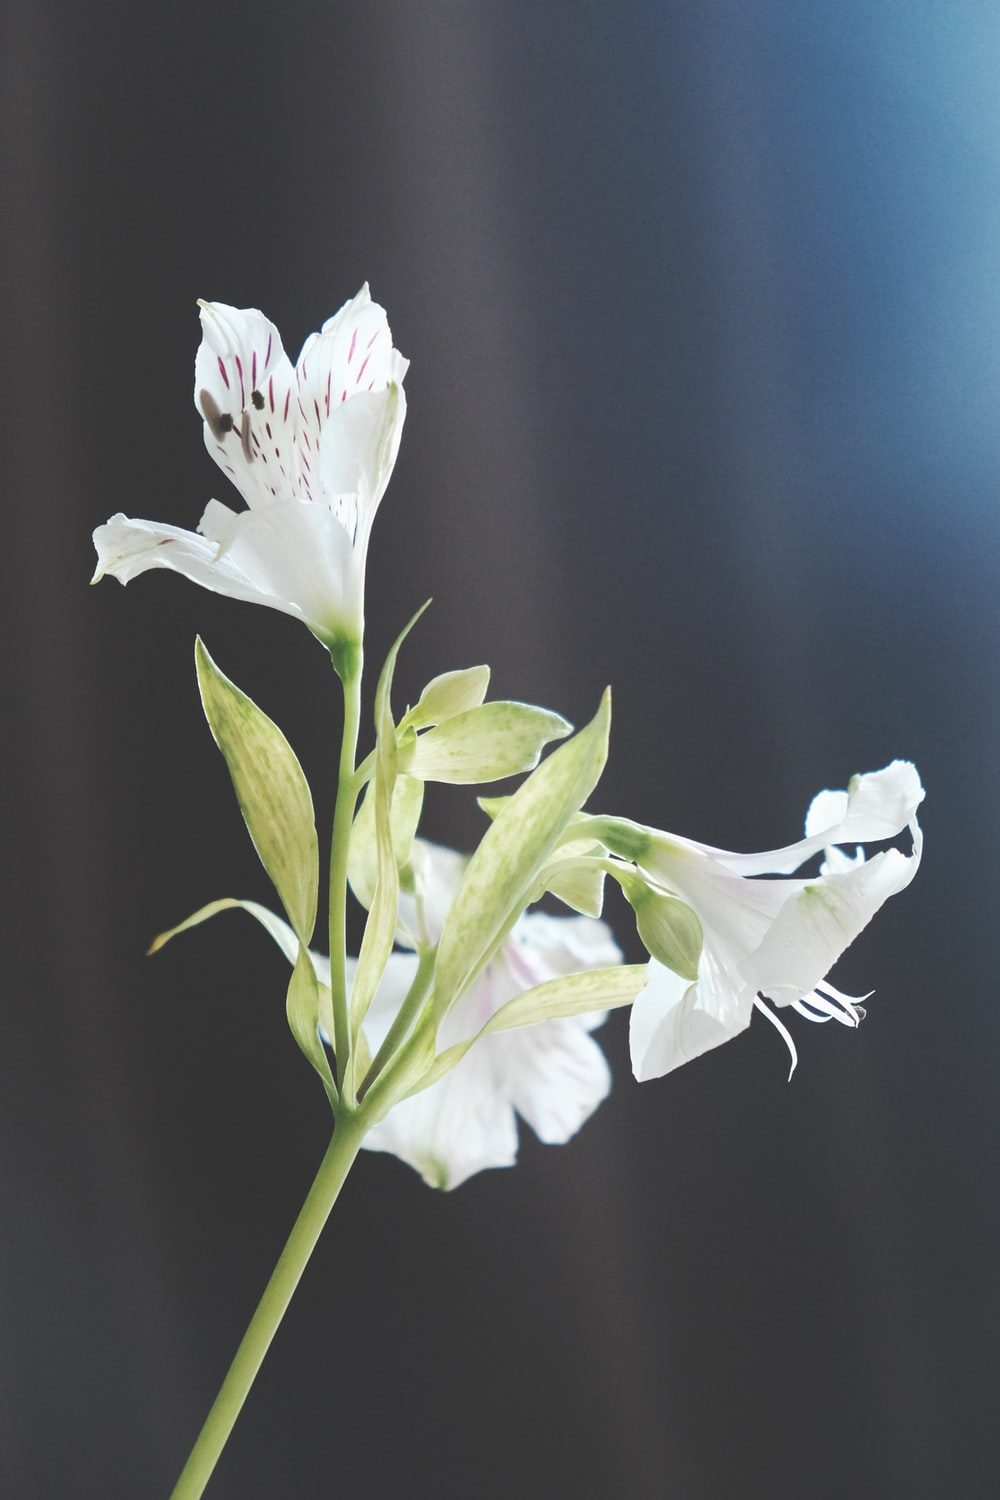 White lily pictures download free images on unsplash white flowers in macro shot izmirmasajfo